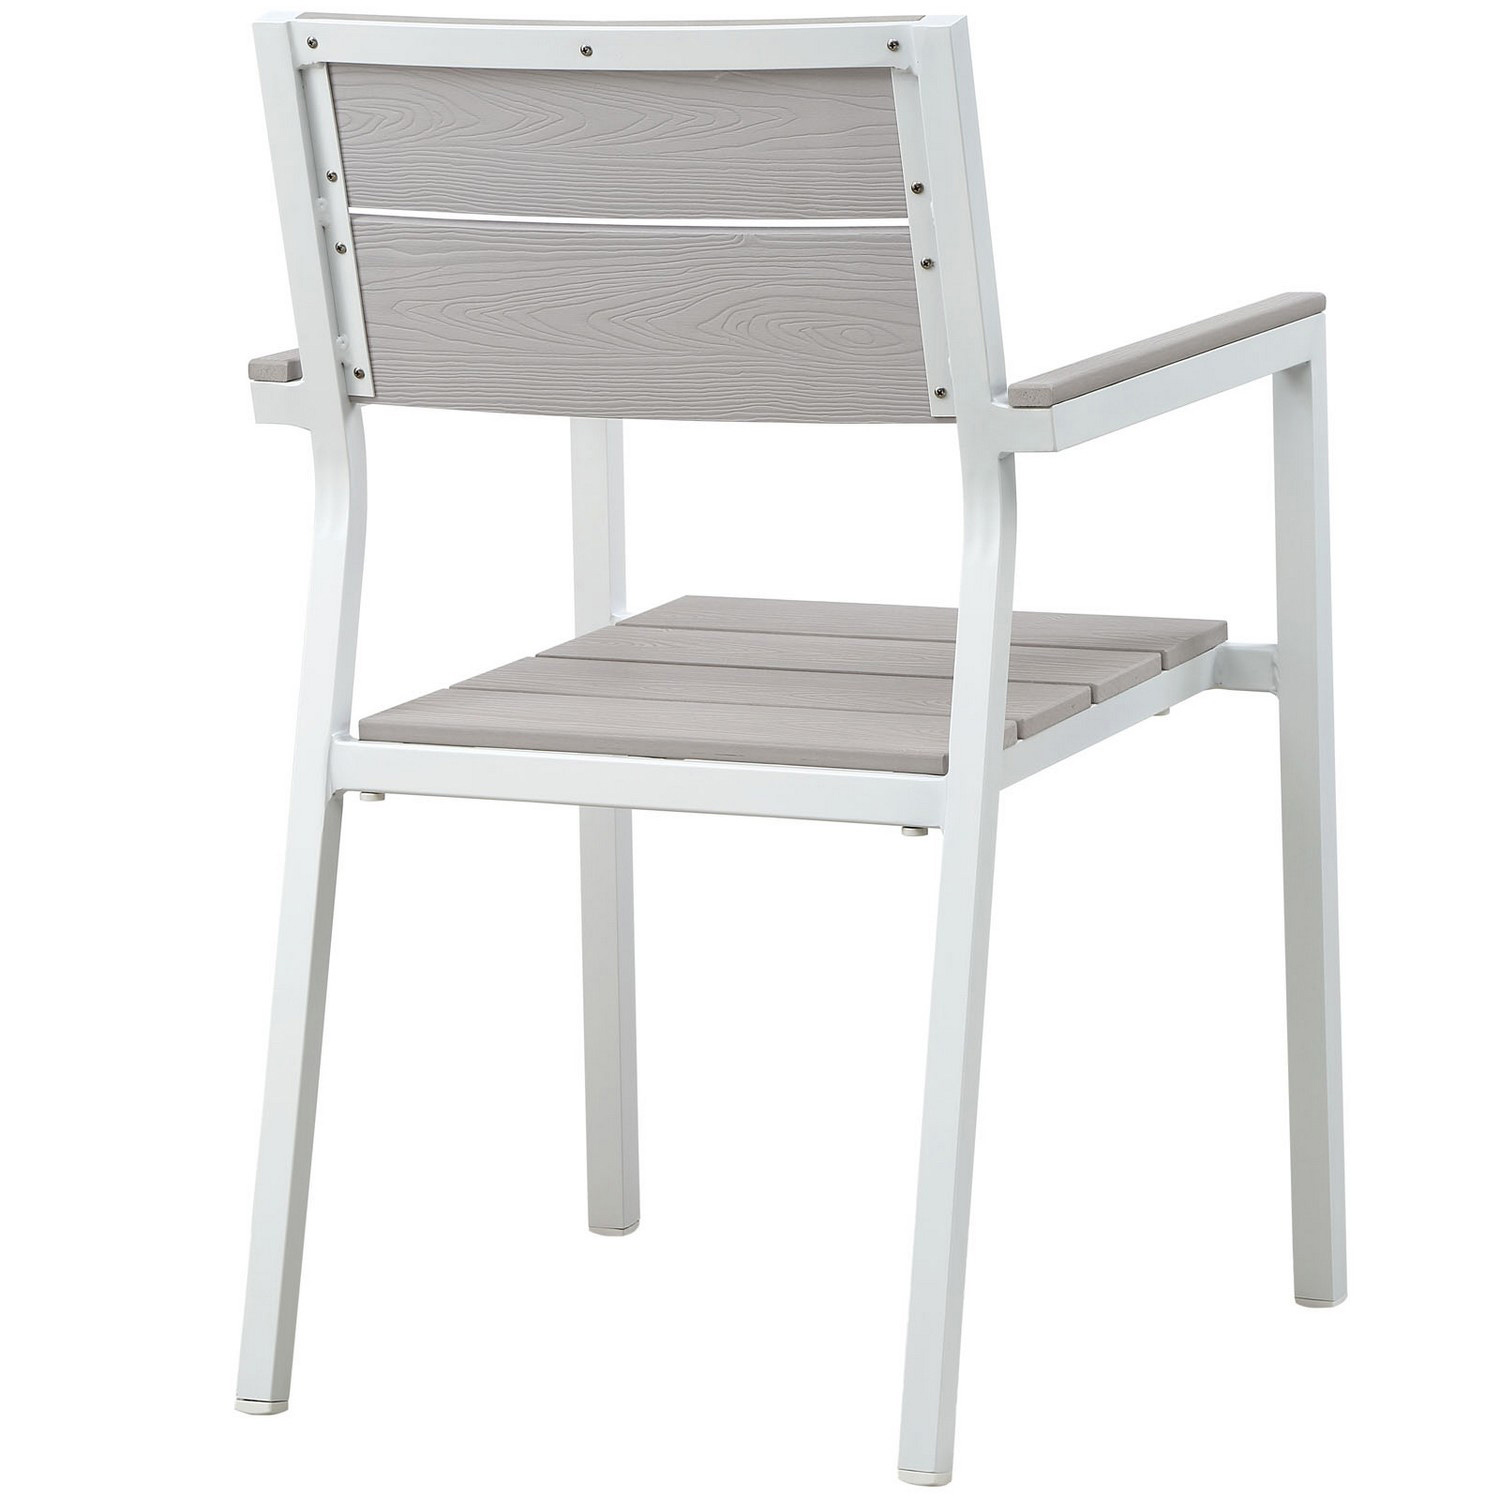 Modway Maine Dining Outdoor Patio Armchair - White/Light Gray